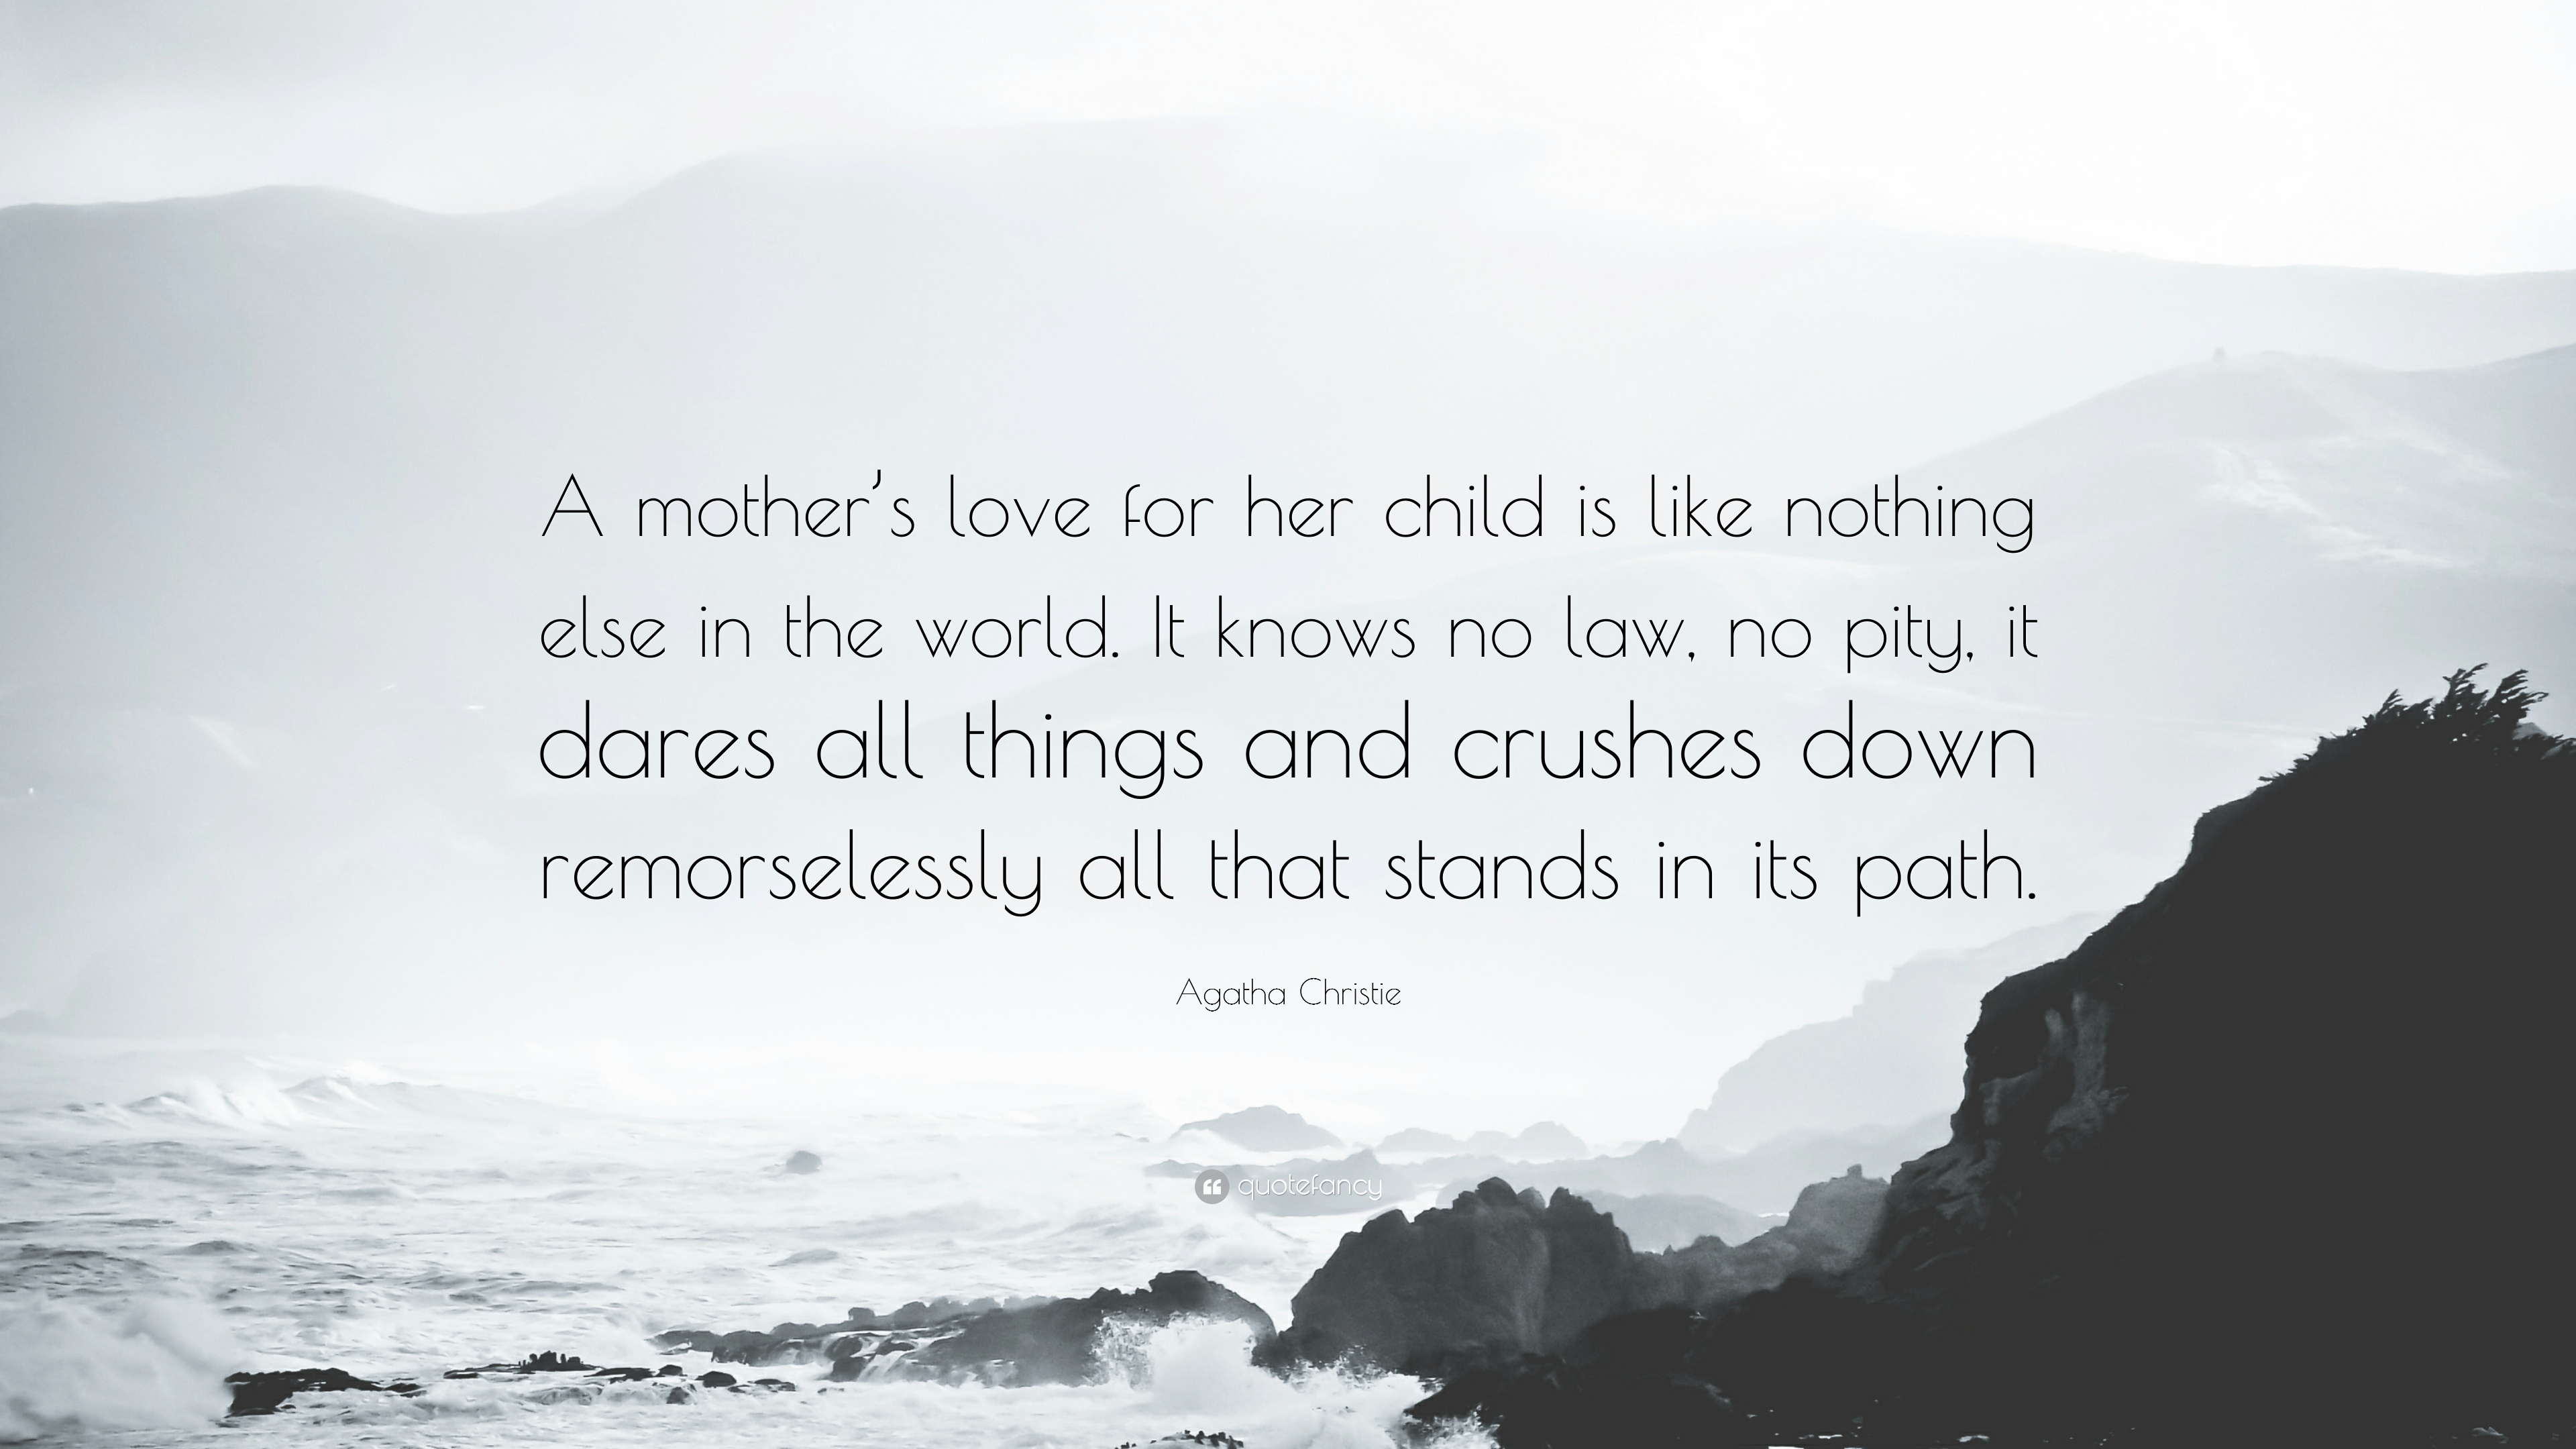 Agatha Christie Quote A Mother S Love For Her Child Is Like Nothing Else In The World It Knows No Law No Pity It Dares All Things And Crush 17 Wallpapers Quotefancy